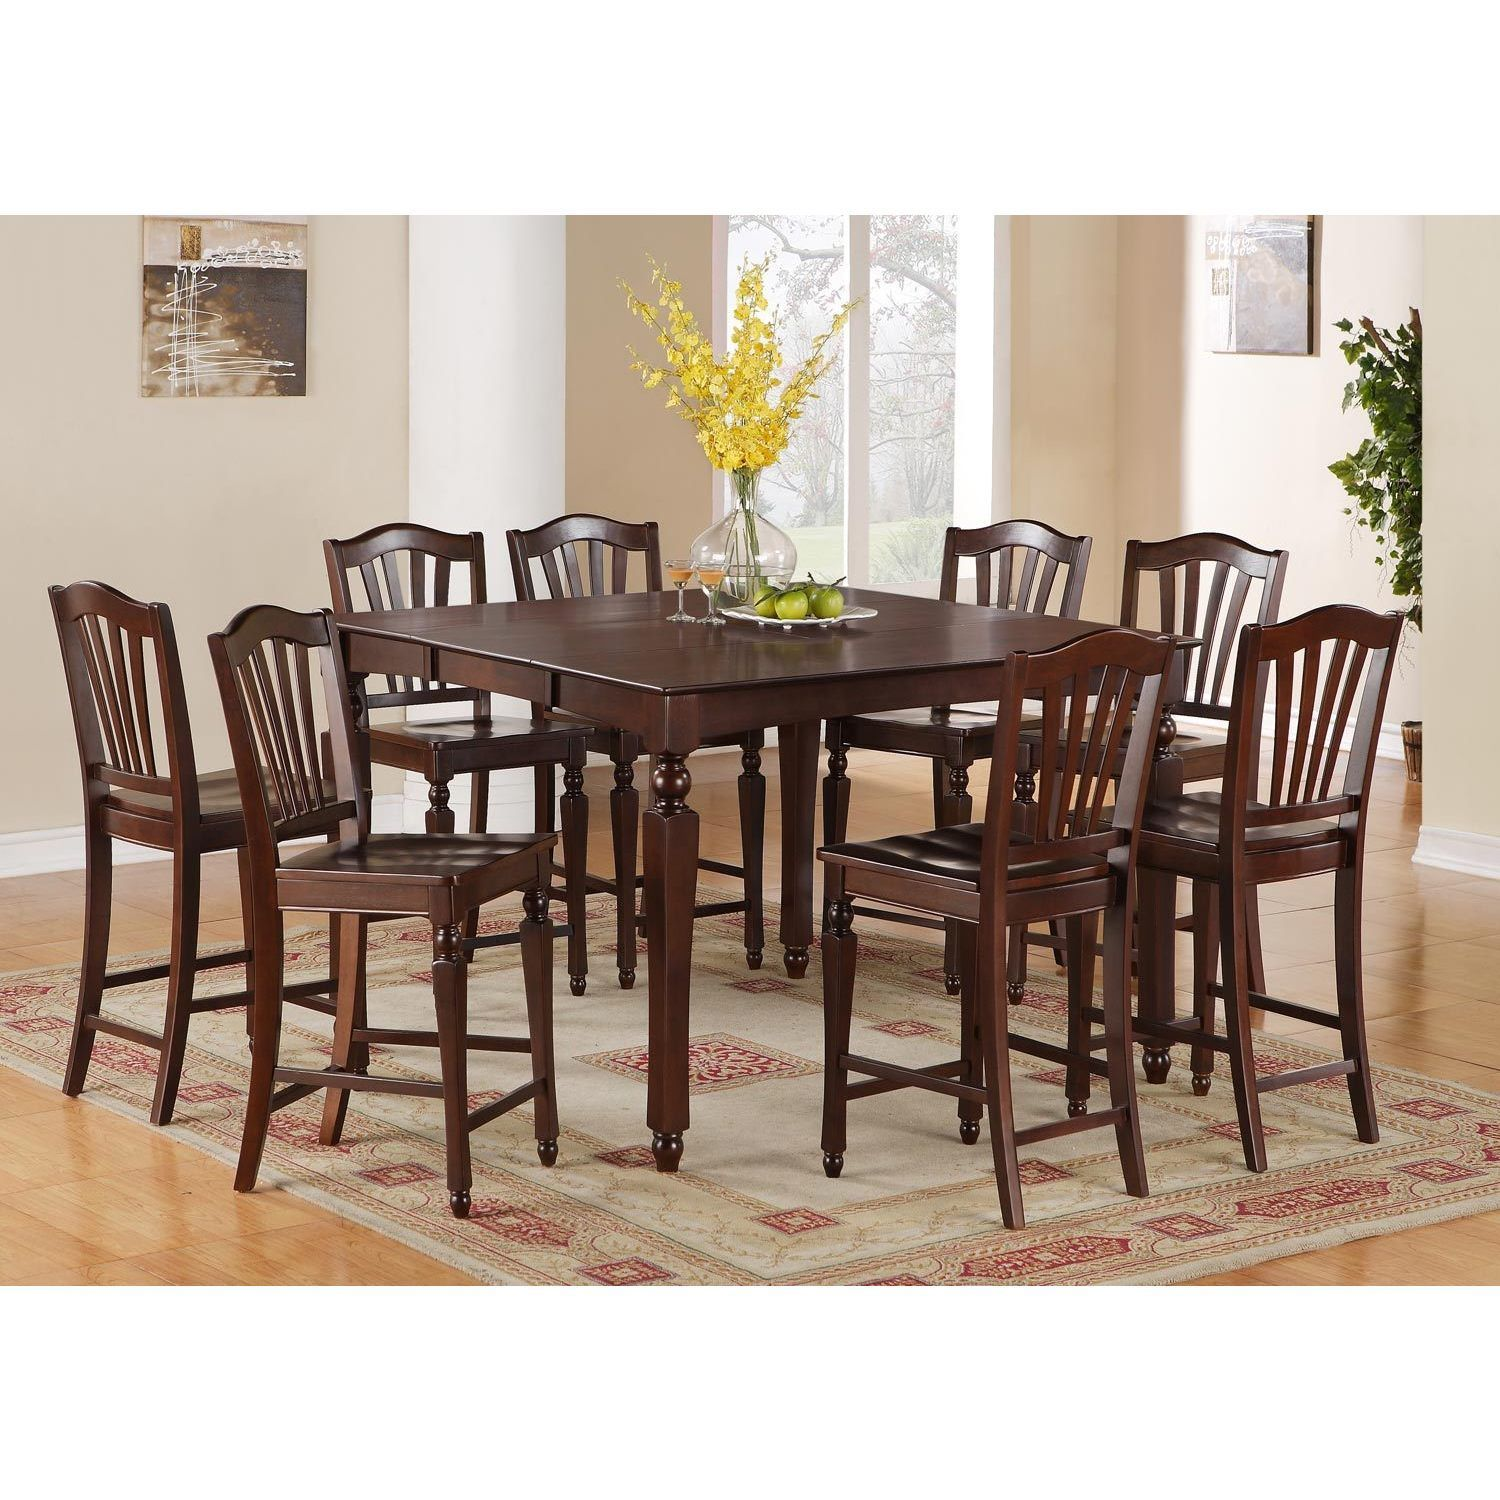 CHEL7 MAH 7 Piece Pub Height Table Set (Wood Seat),